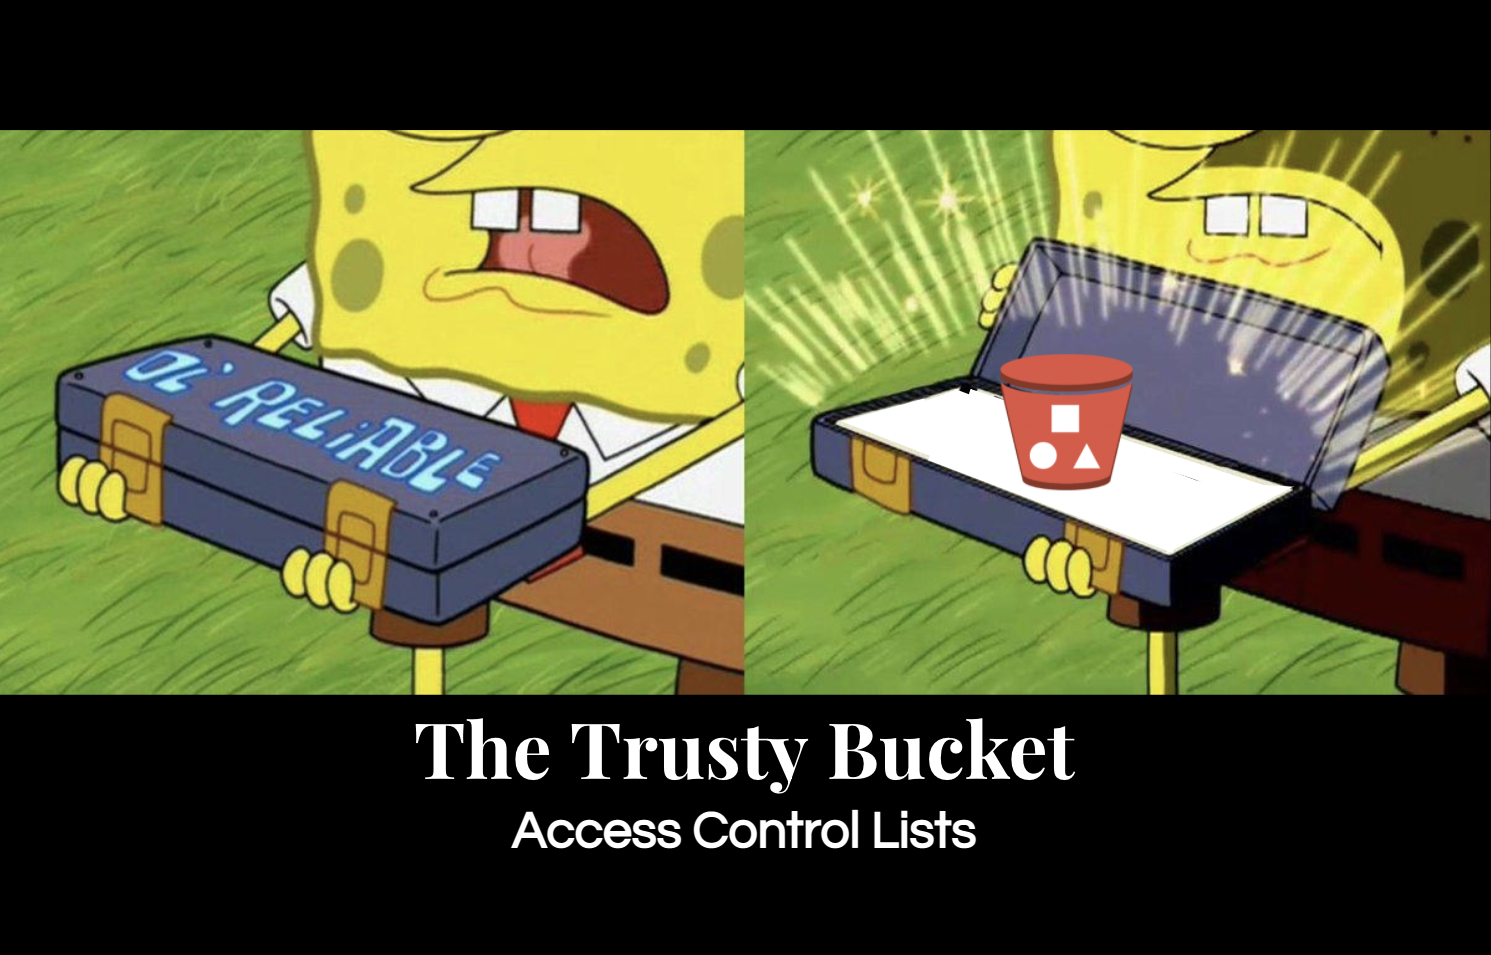 The Trusty Bucket - Access Control Lists